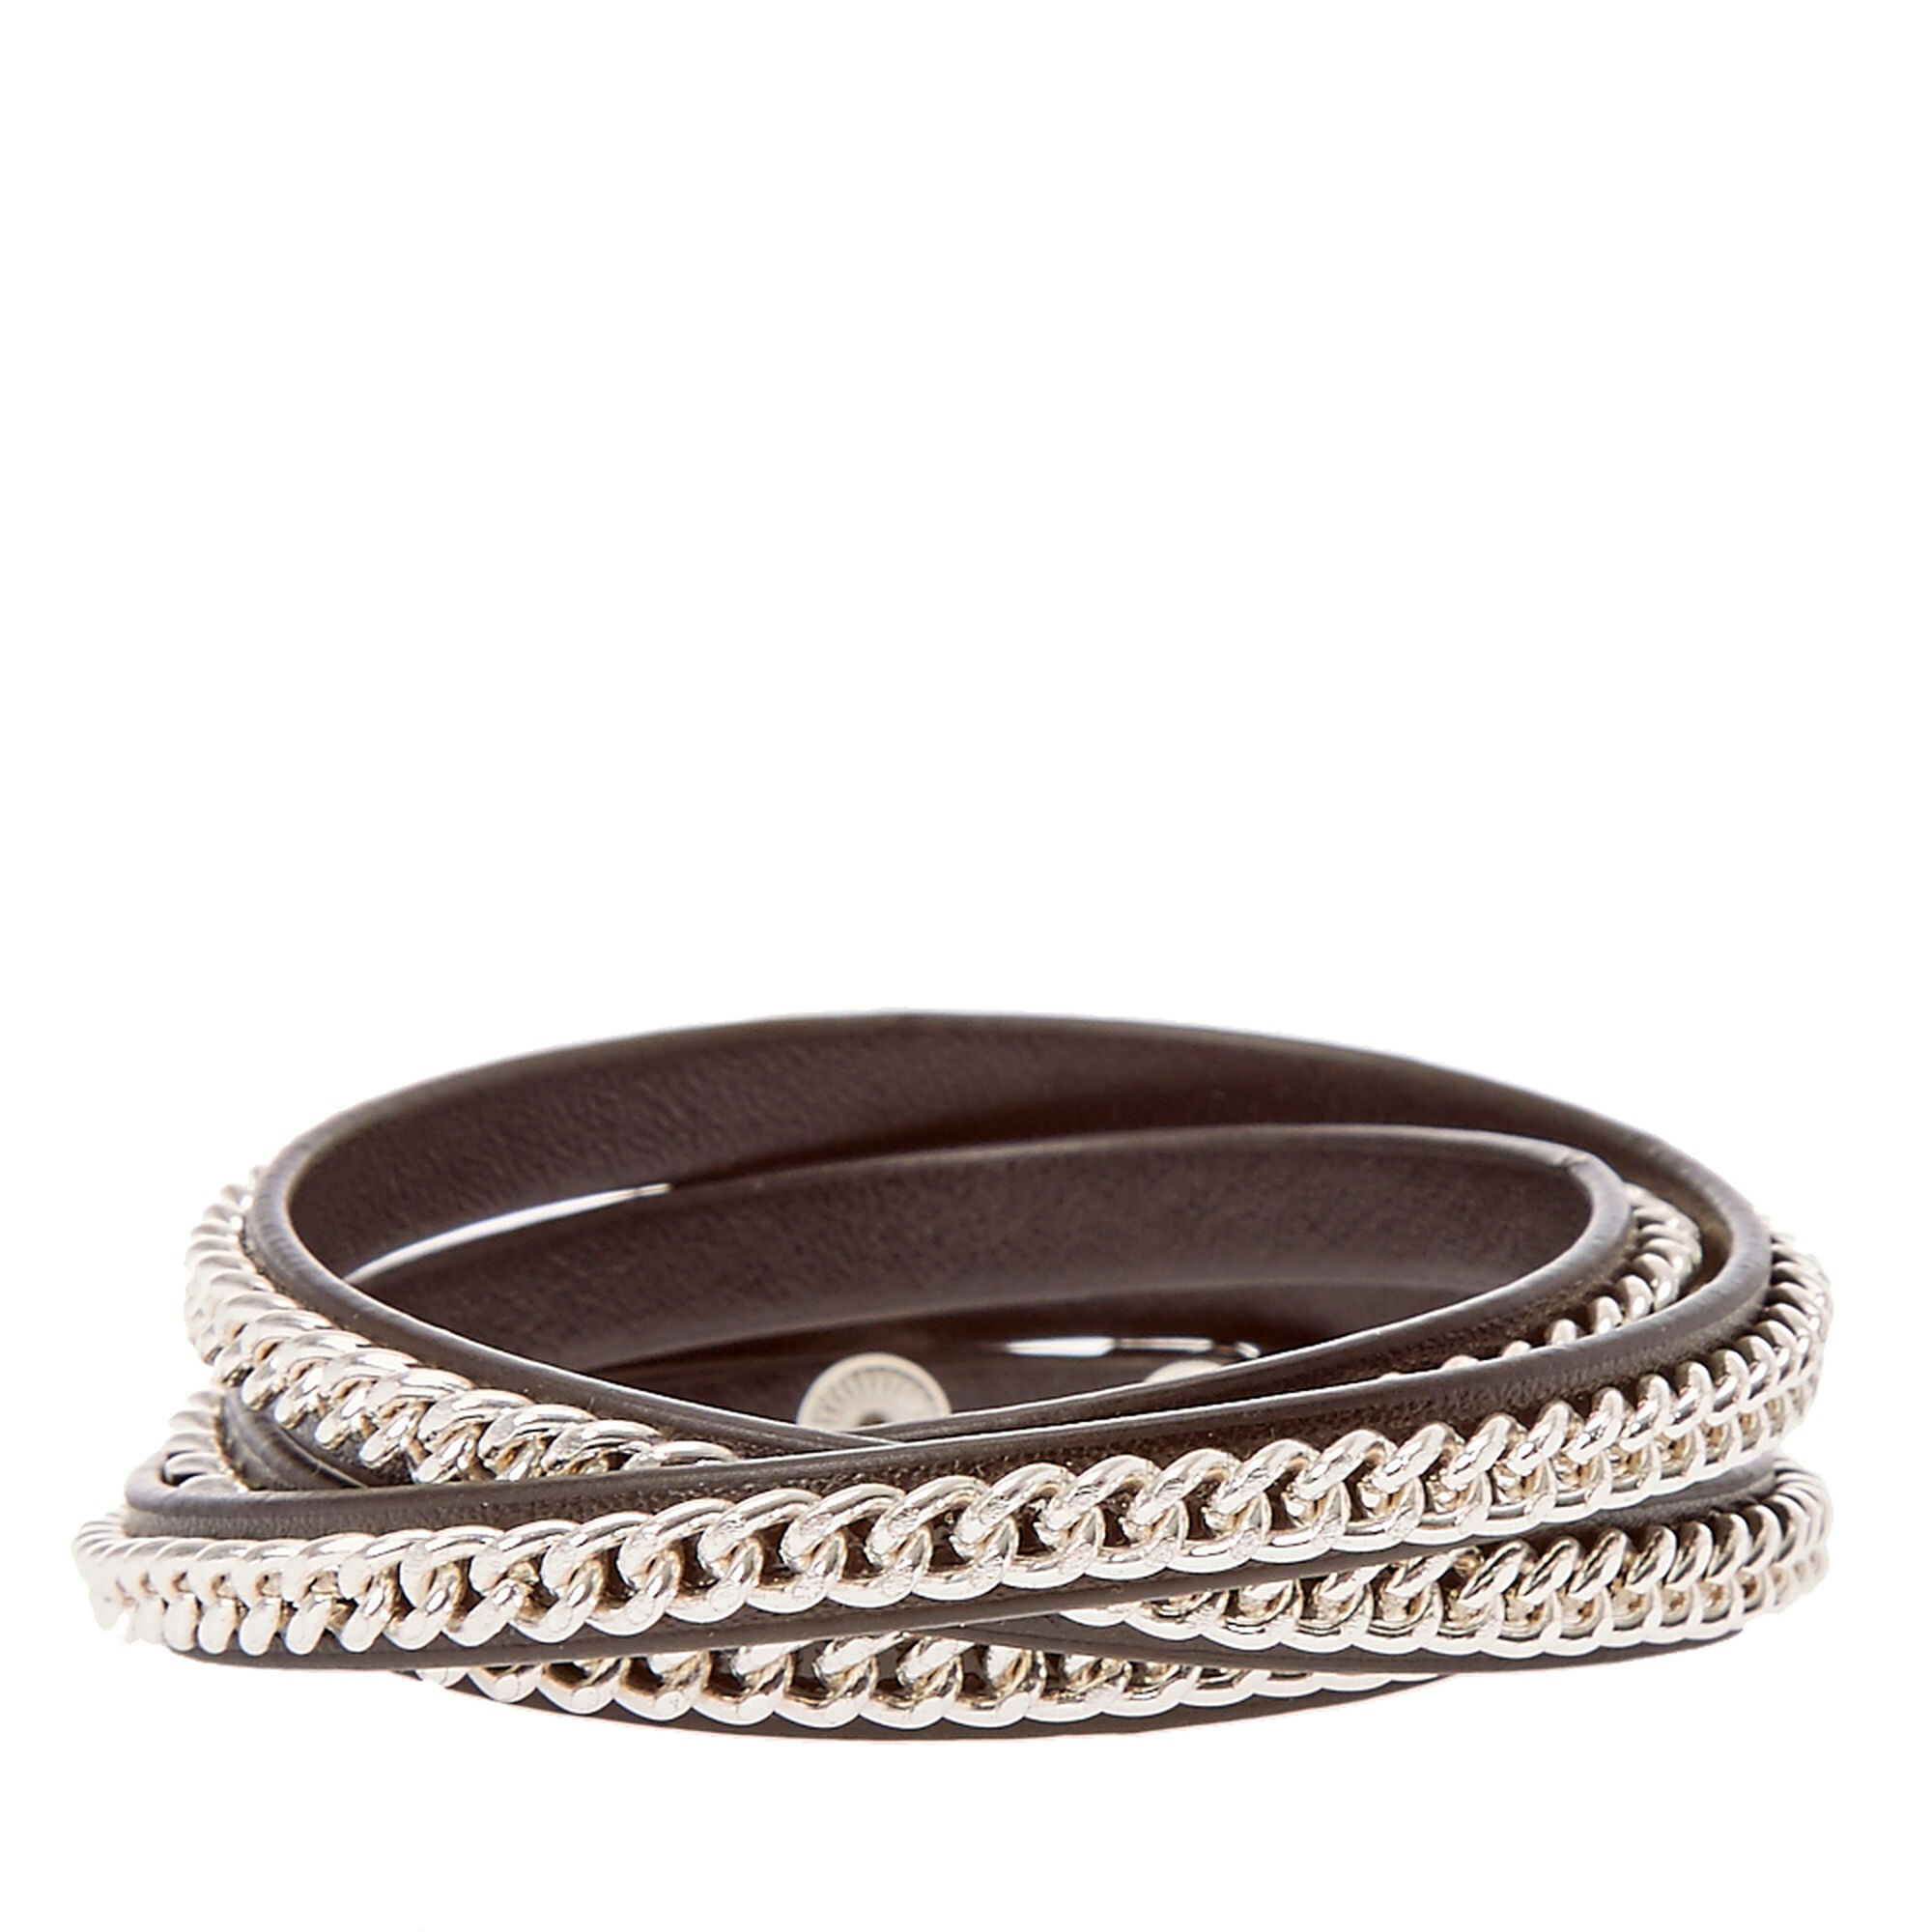 bangles in lyst for bangle product brown jewelry fendi gallery leather ebony bracelet men selleria